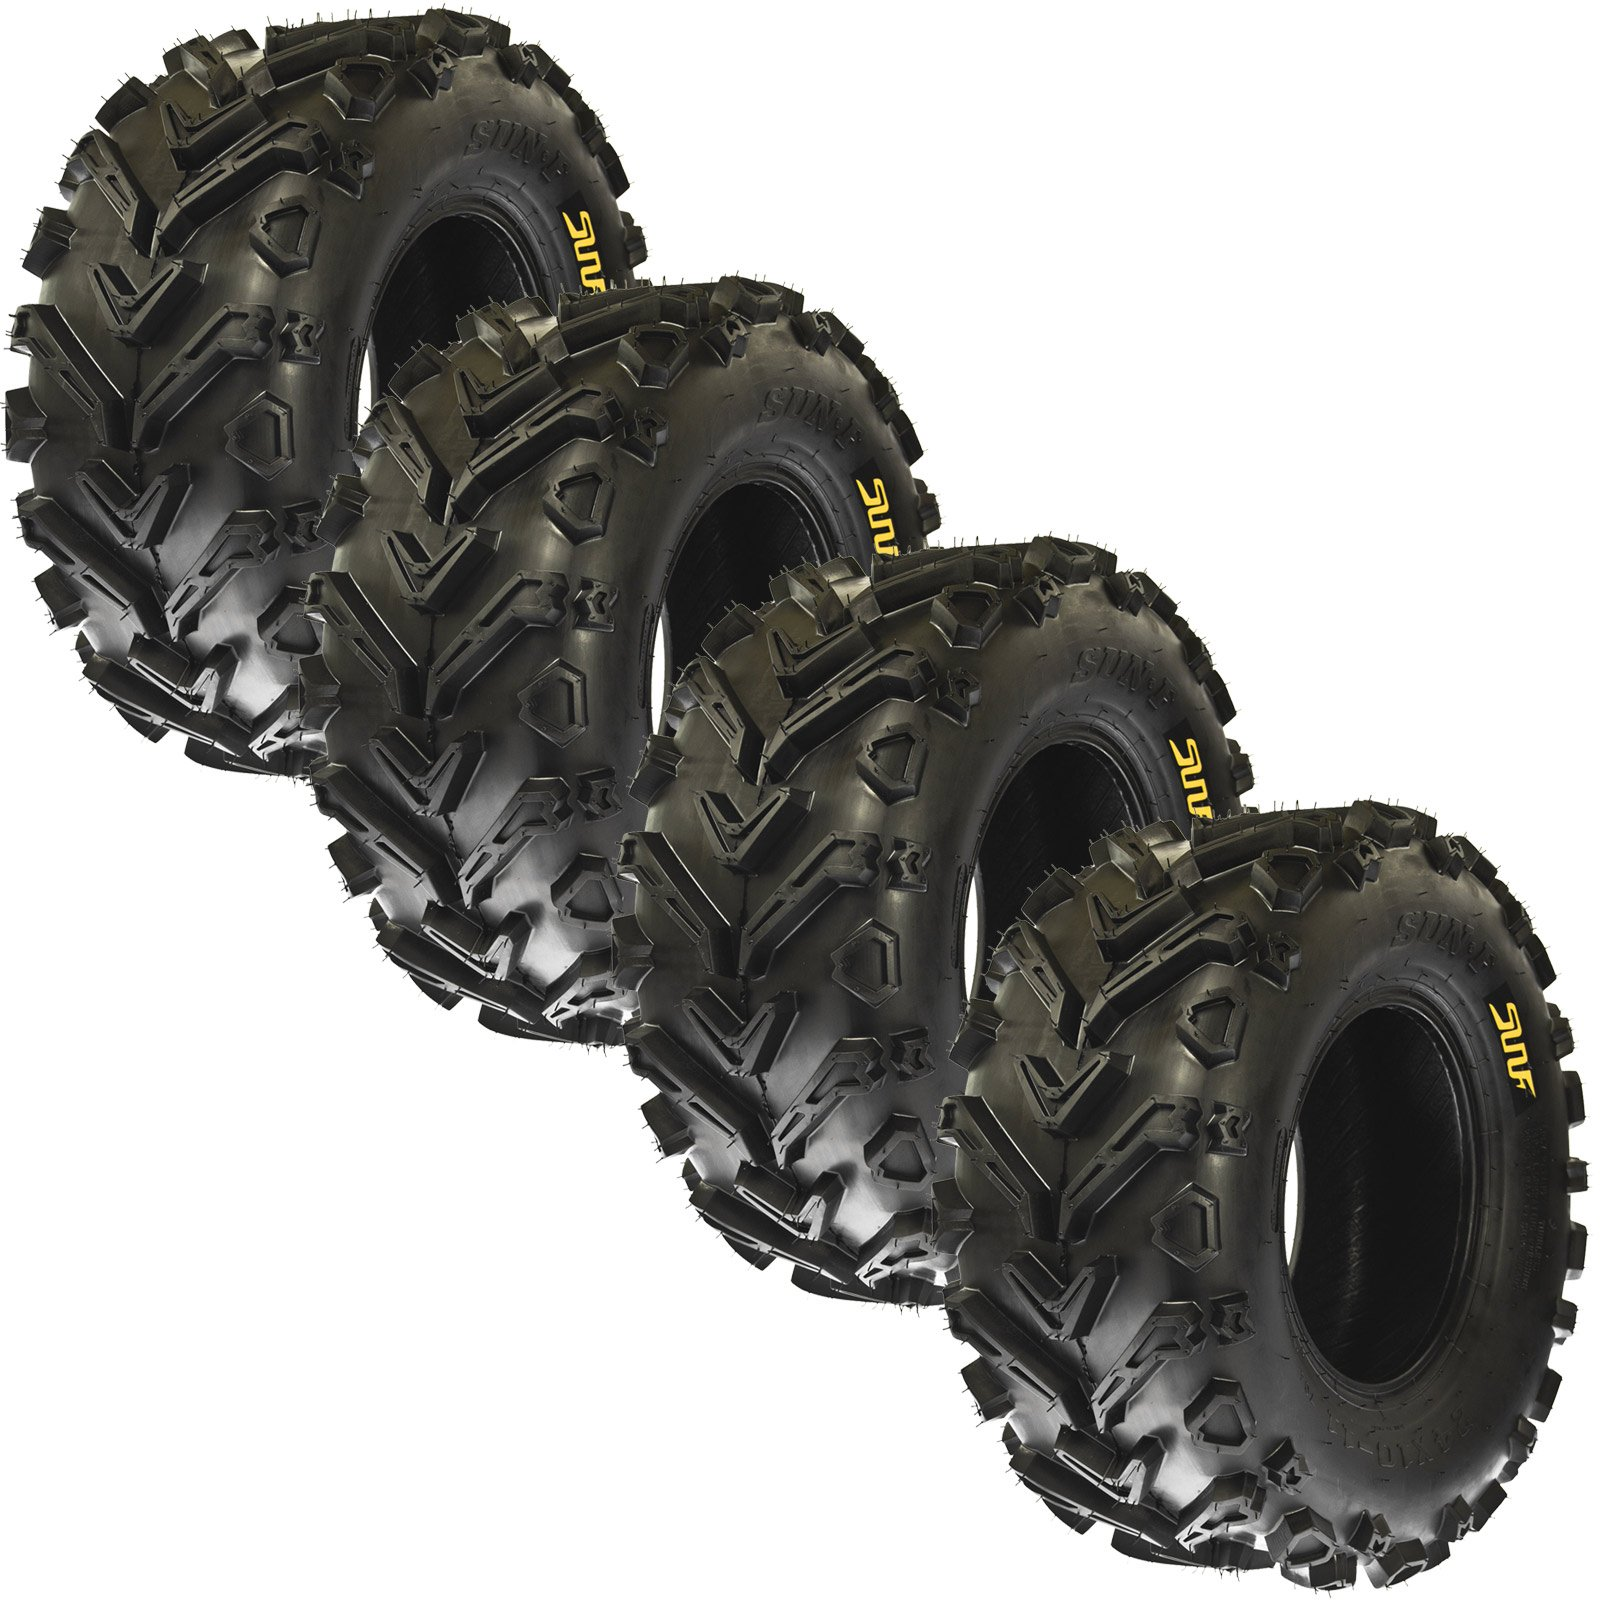 Set of 4 SunF A041 ATV/UTV Tires 24x8-12 & 24x10-11, 6 Ply